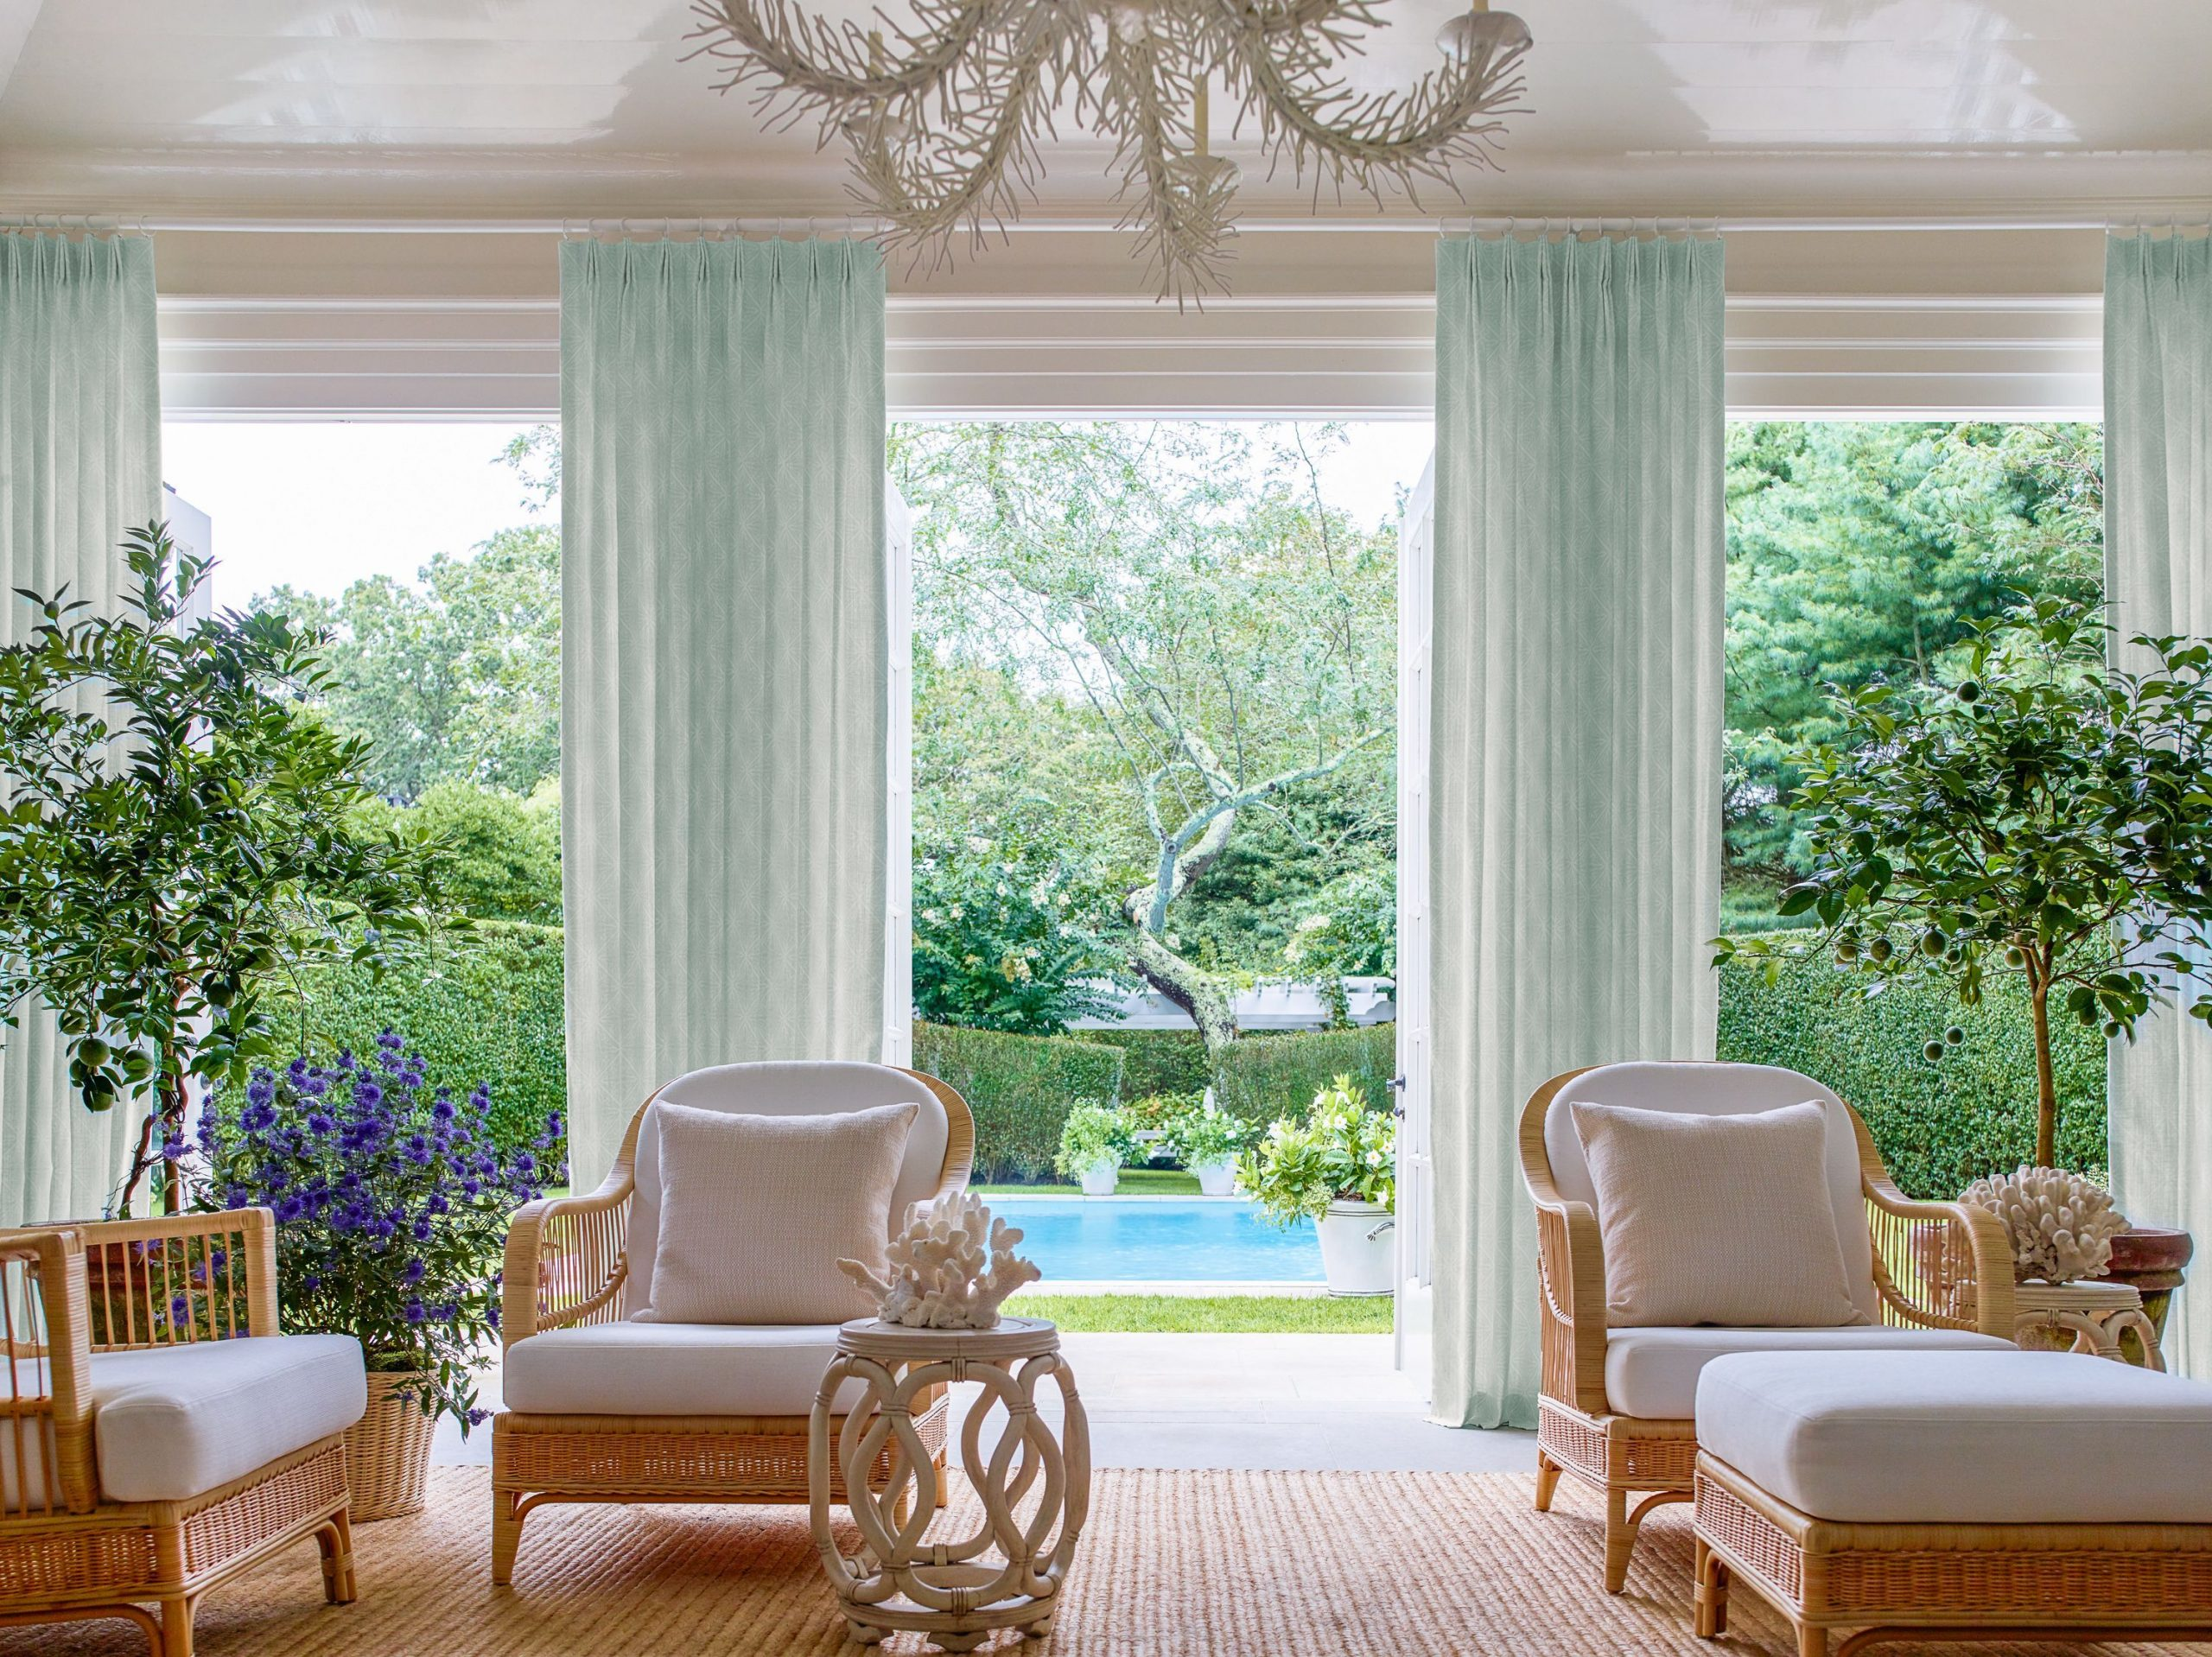 DIY Window Treatments – How To Select The Right Window Treatments